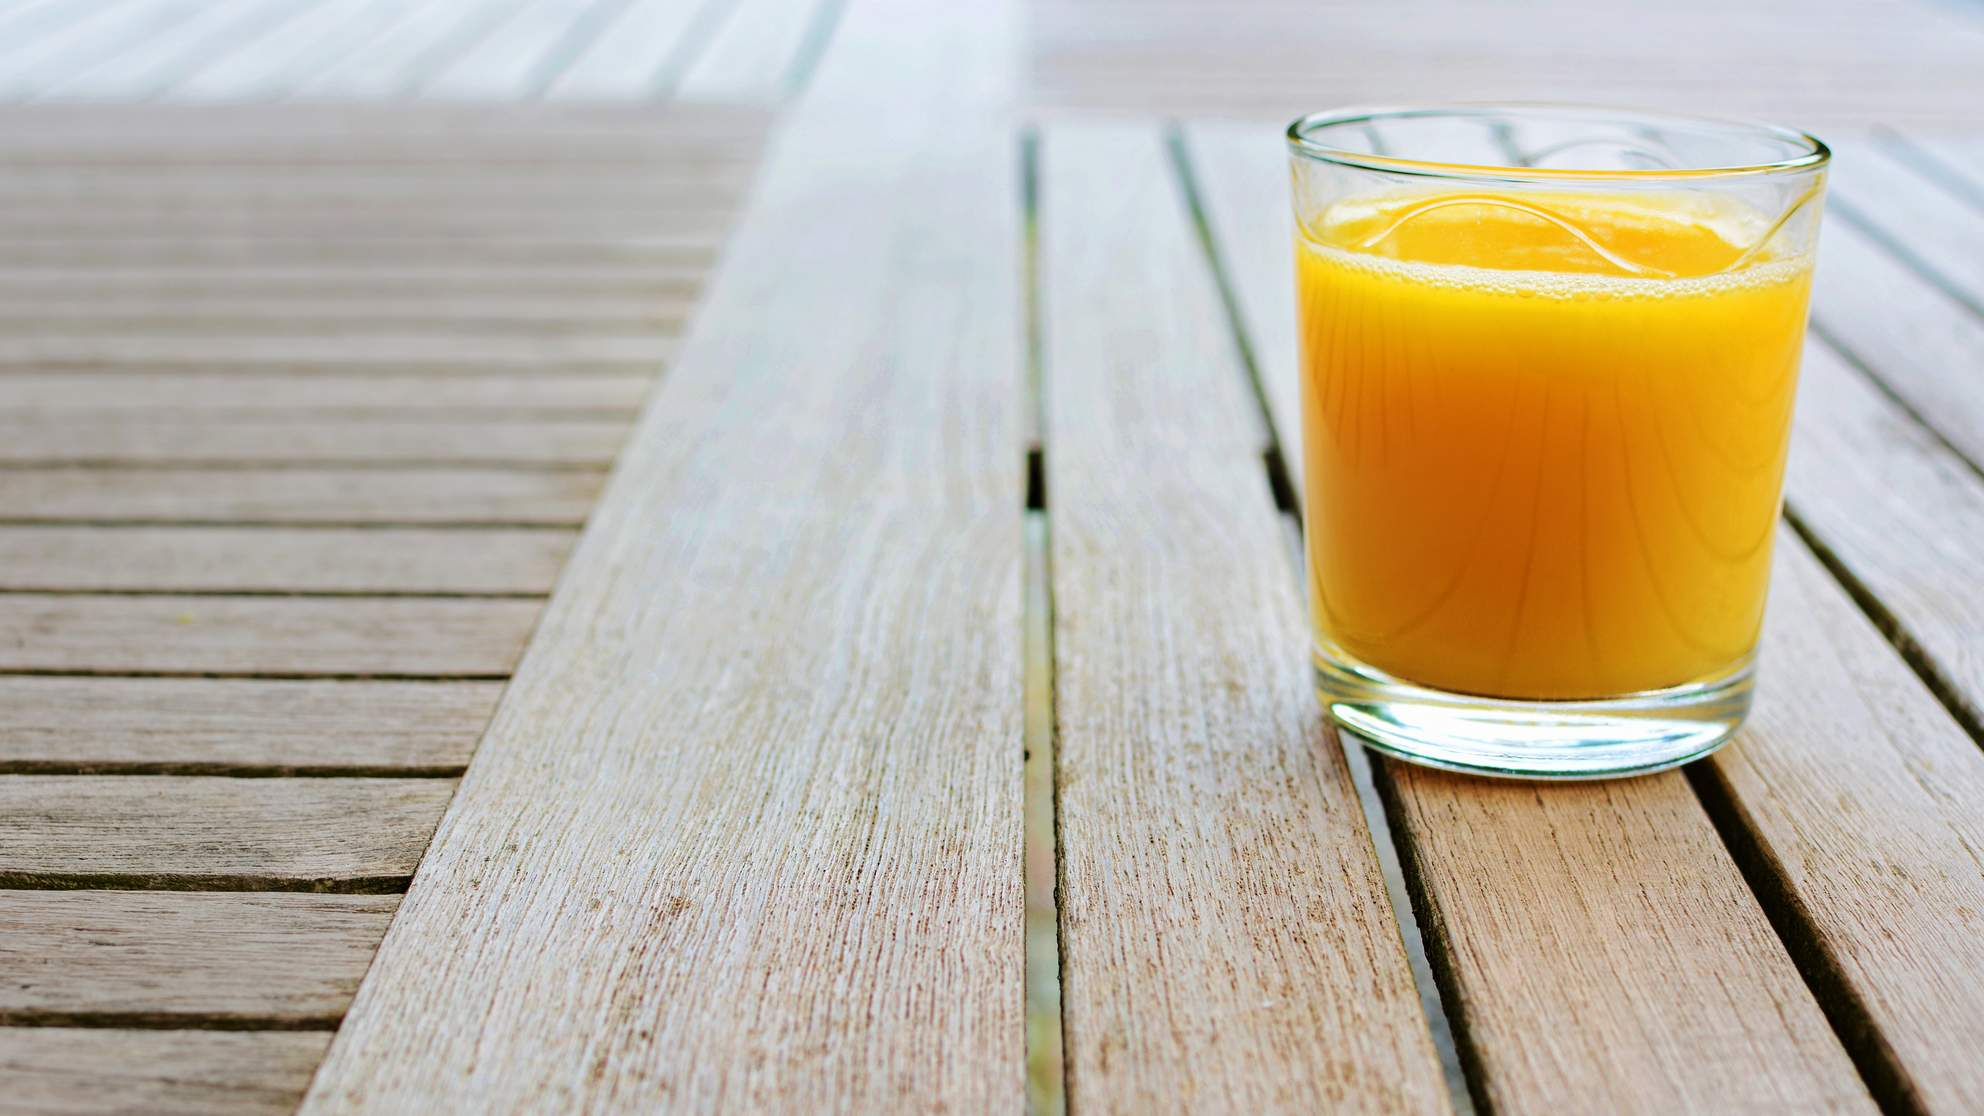 Babies Should Not Drink Fruit Juice, Doctors Group Says